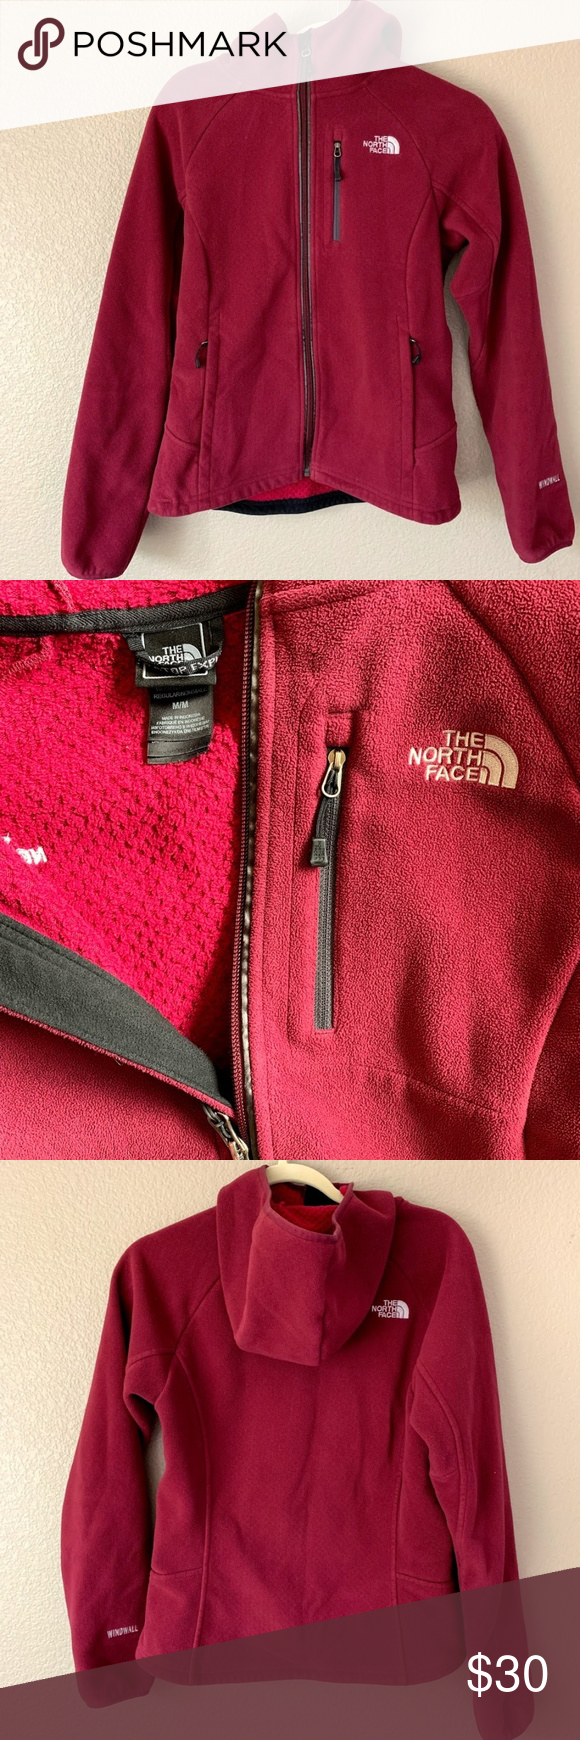 North Face Windwall Jacket The North Face North Face Jacket North Face Windwall [ 1740 x 580 Pixel ]